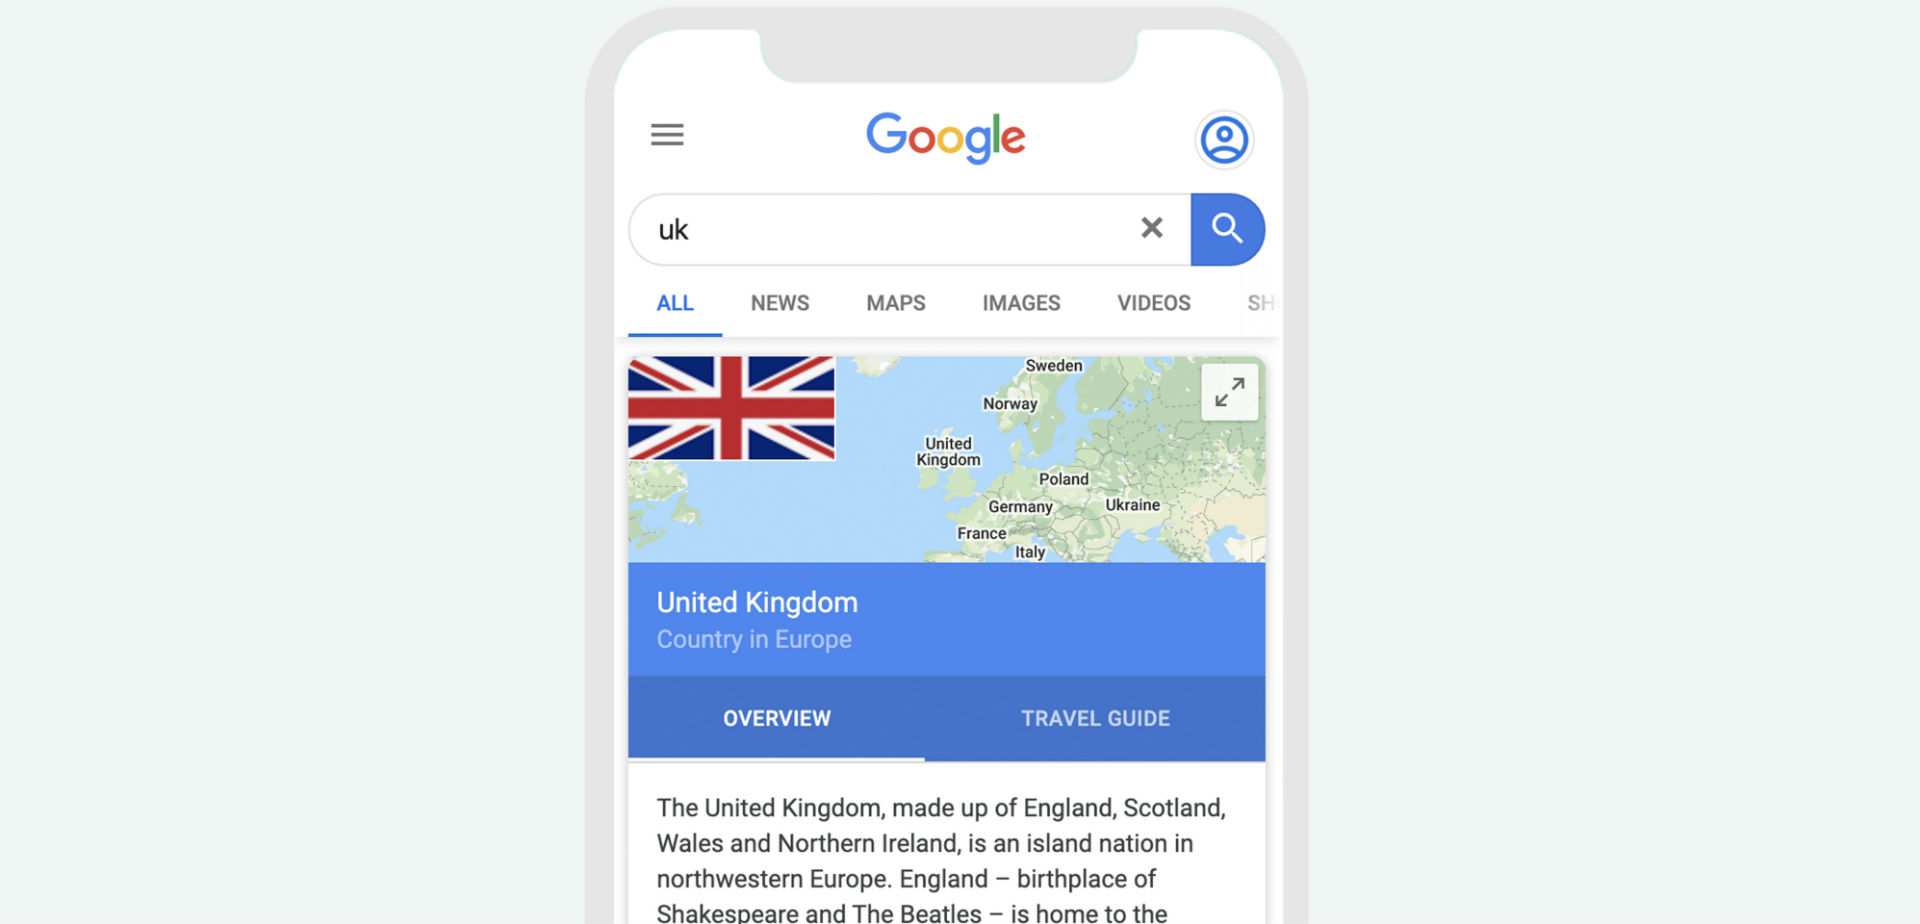 Google knowledge panel for the United Kingdom